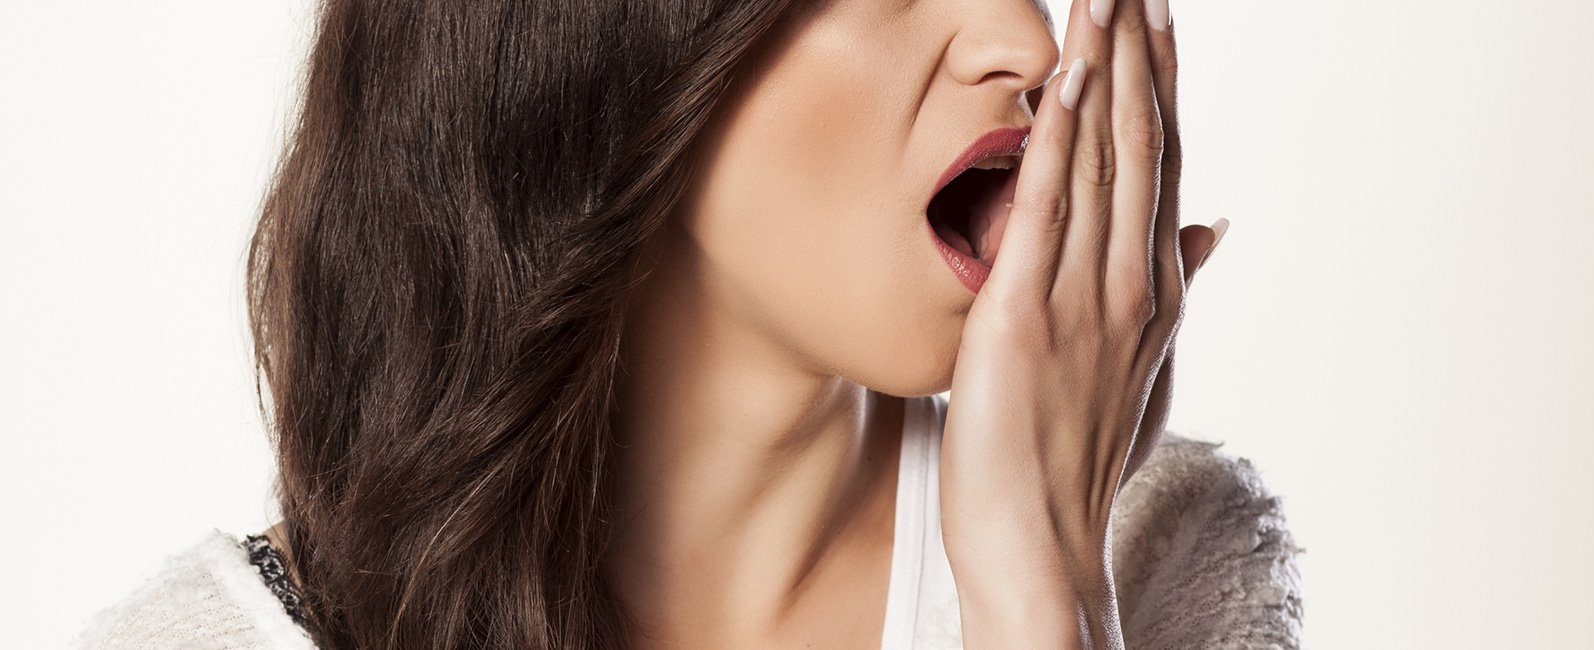 Help! I Have Bad Breath: 5 Tips to Get Rid of Your Halitosis